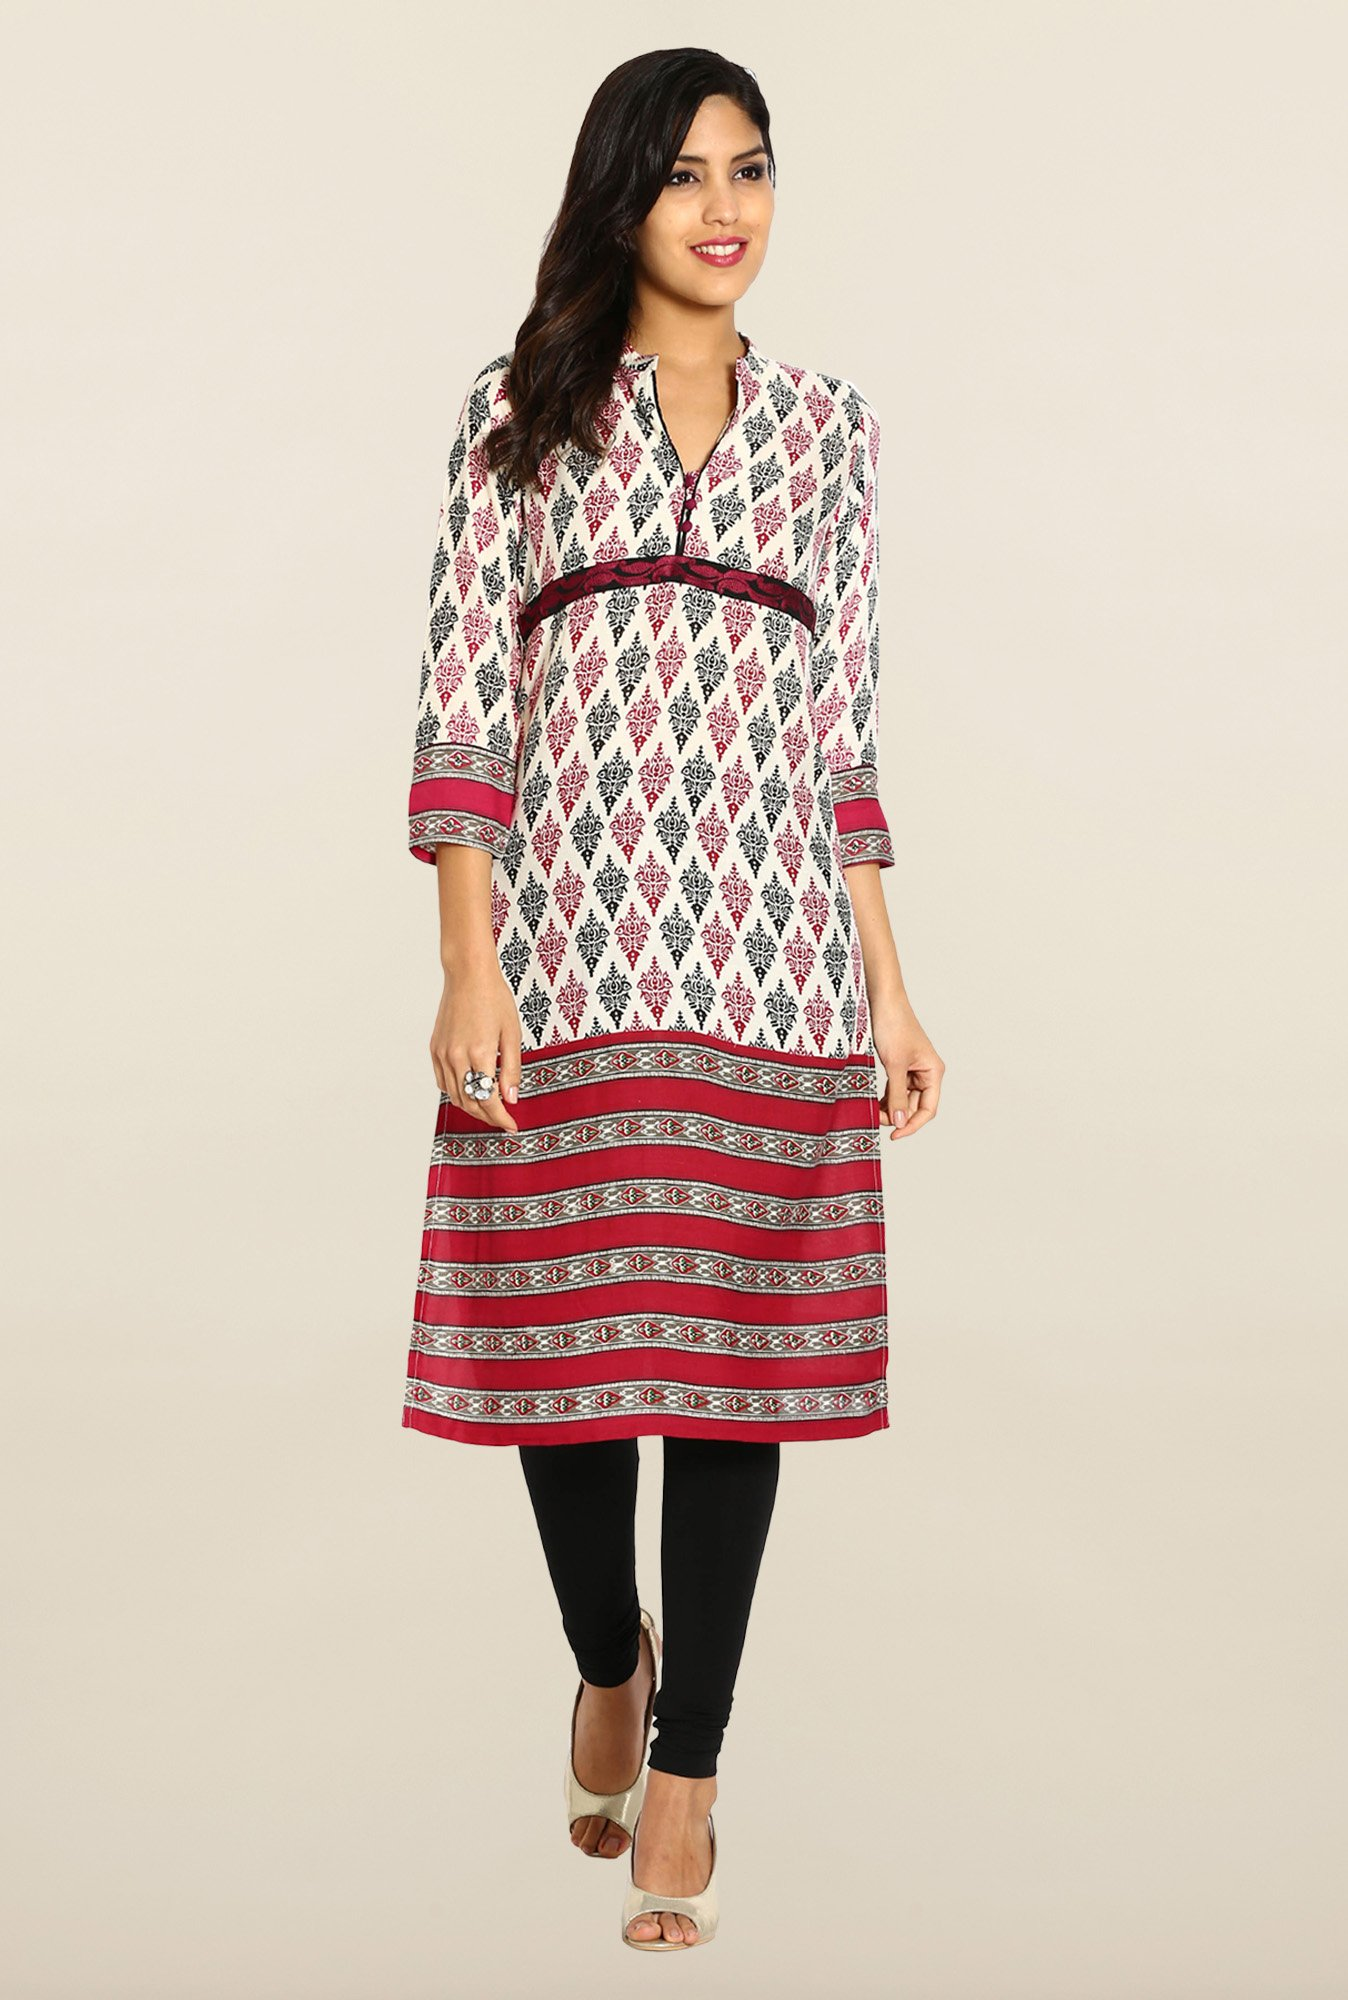 Soch Cream & Maroon Cotton Kurta